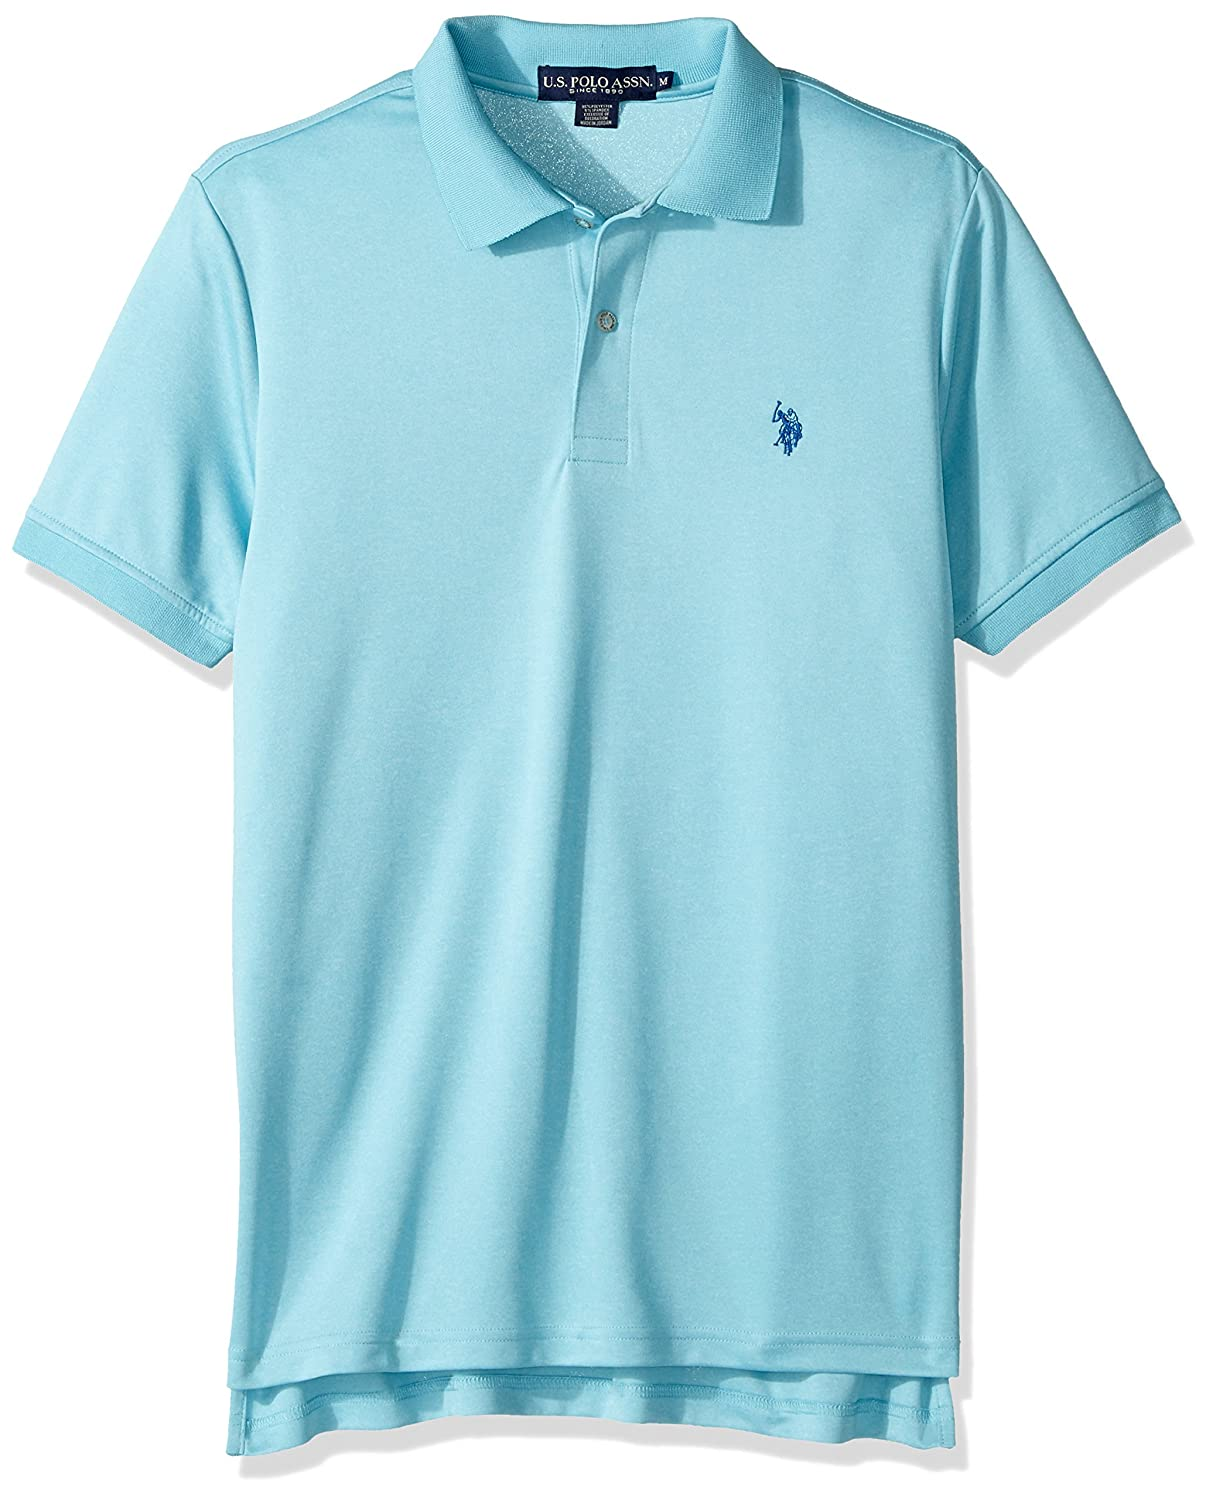 Mens Classic Fit Solid Short Sleeve Stretch Poly Polo Shirt Polo Assn U.S